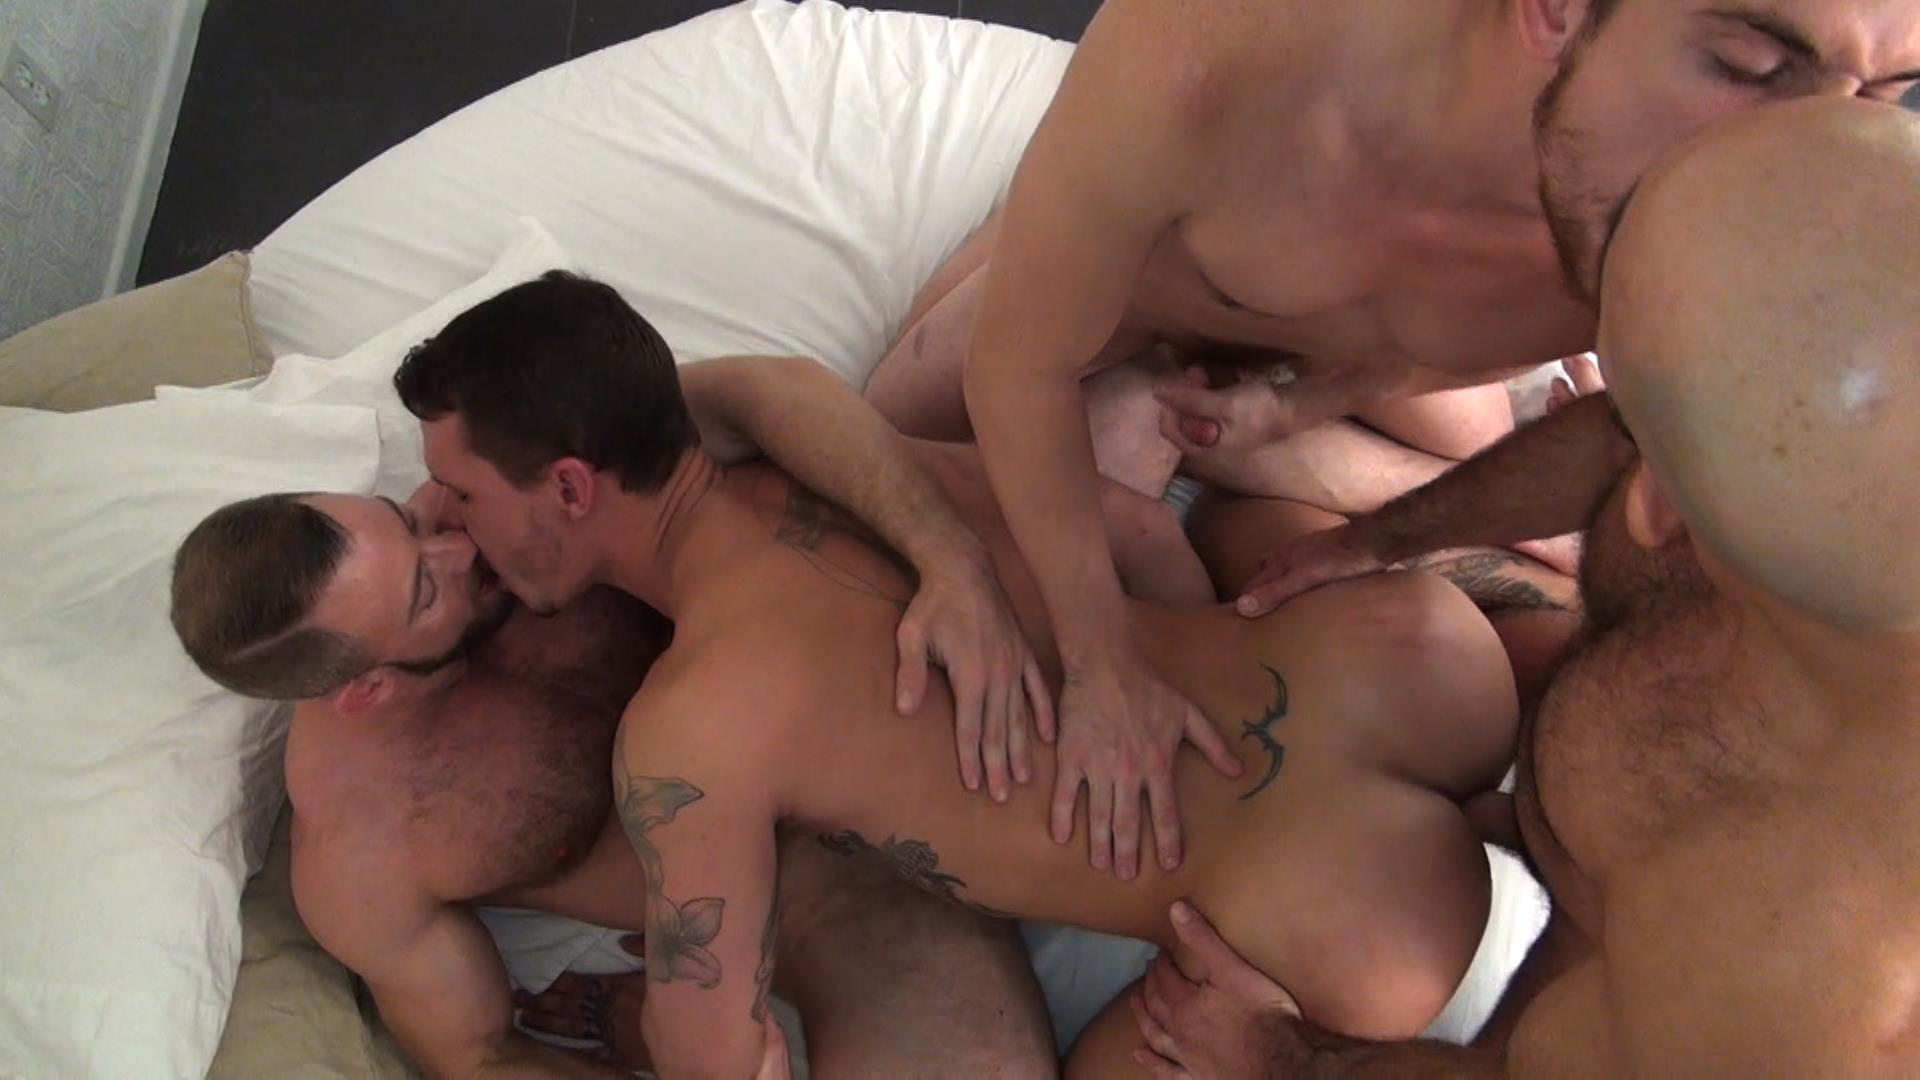 image Nasty gay sex boys movie and free ass